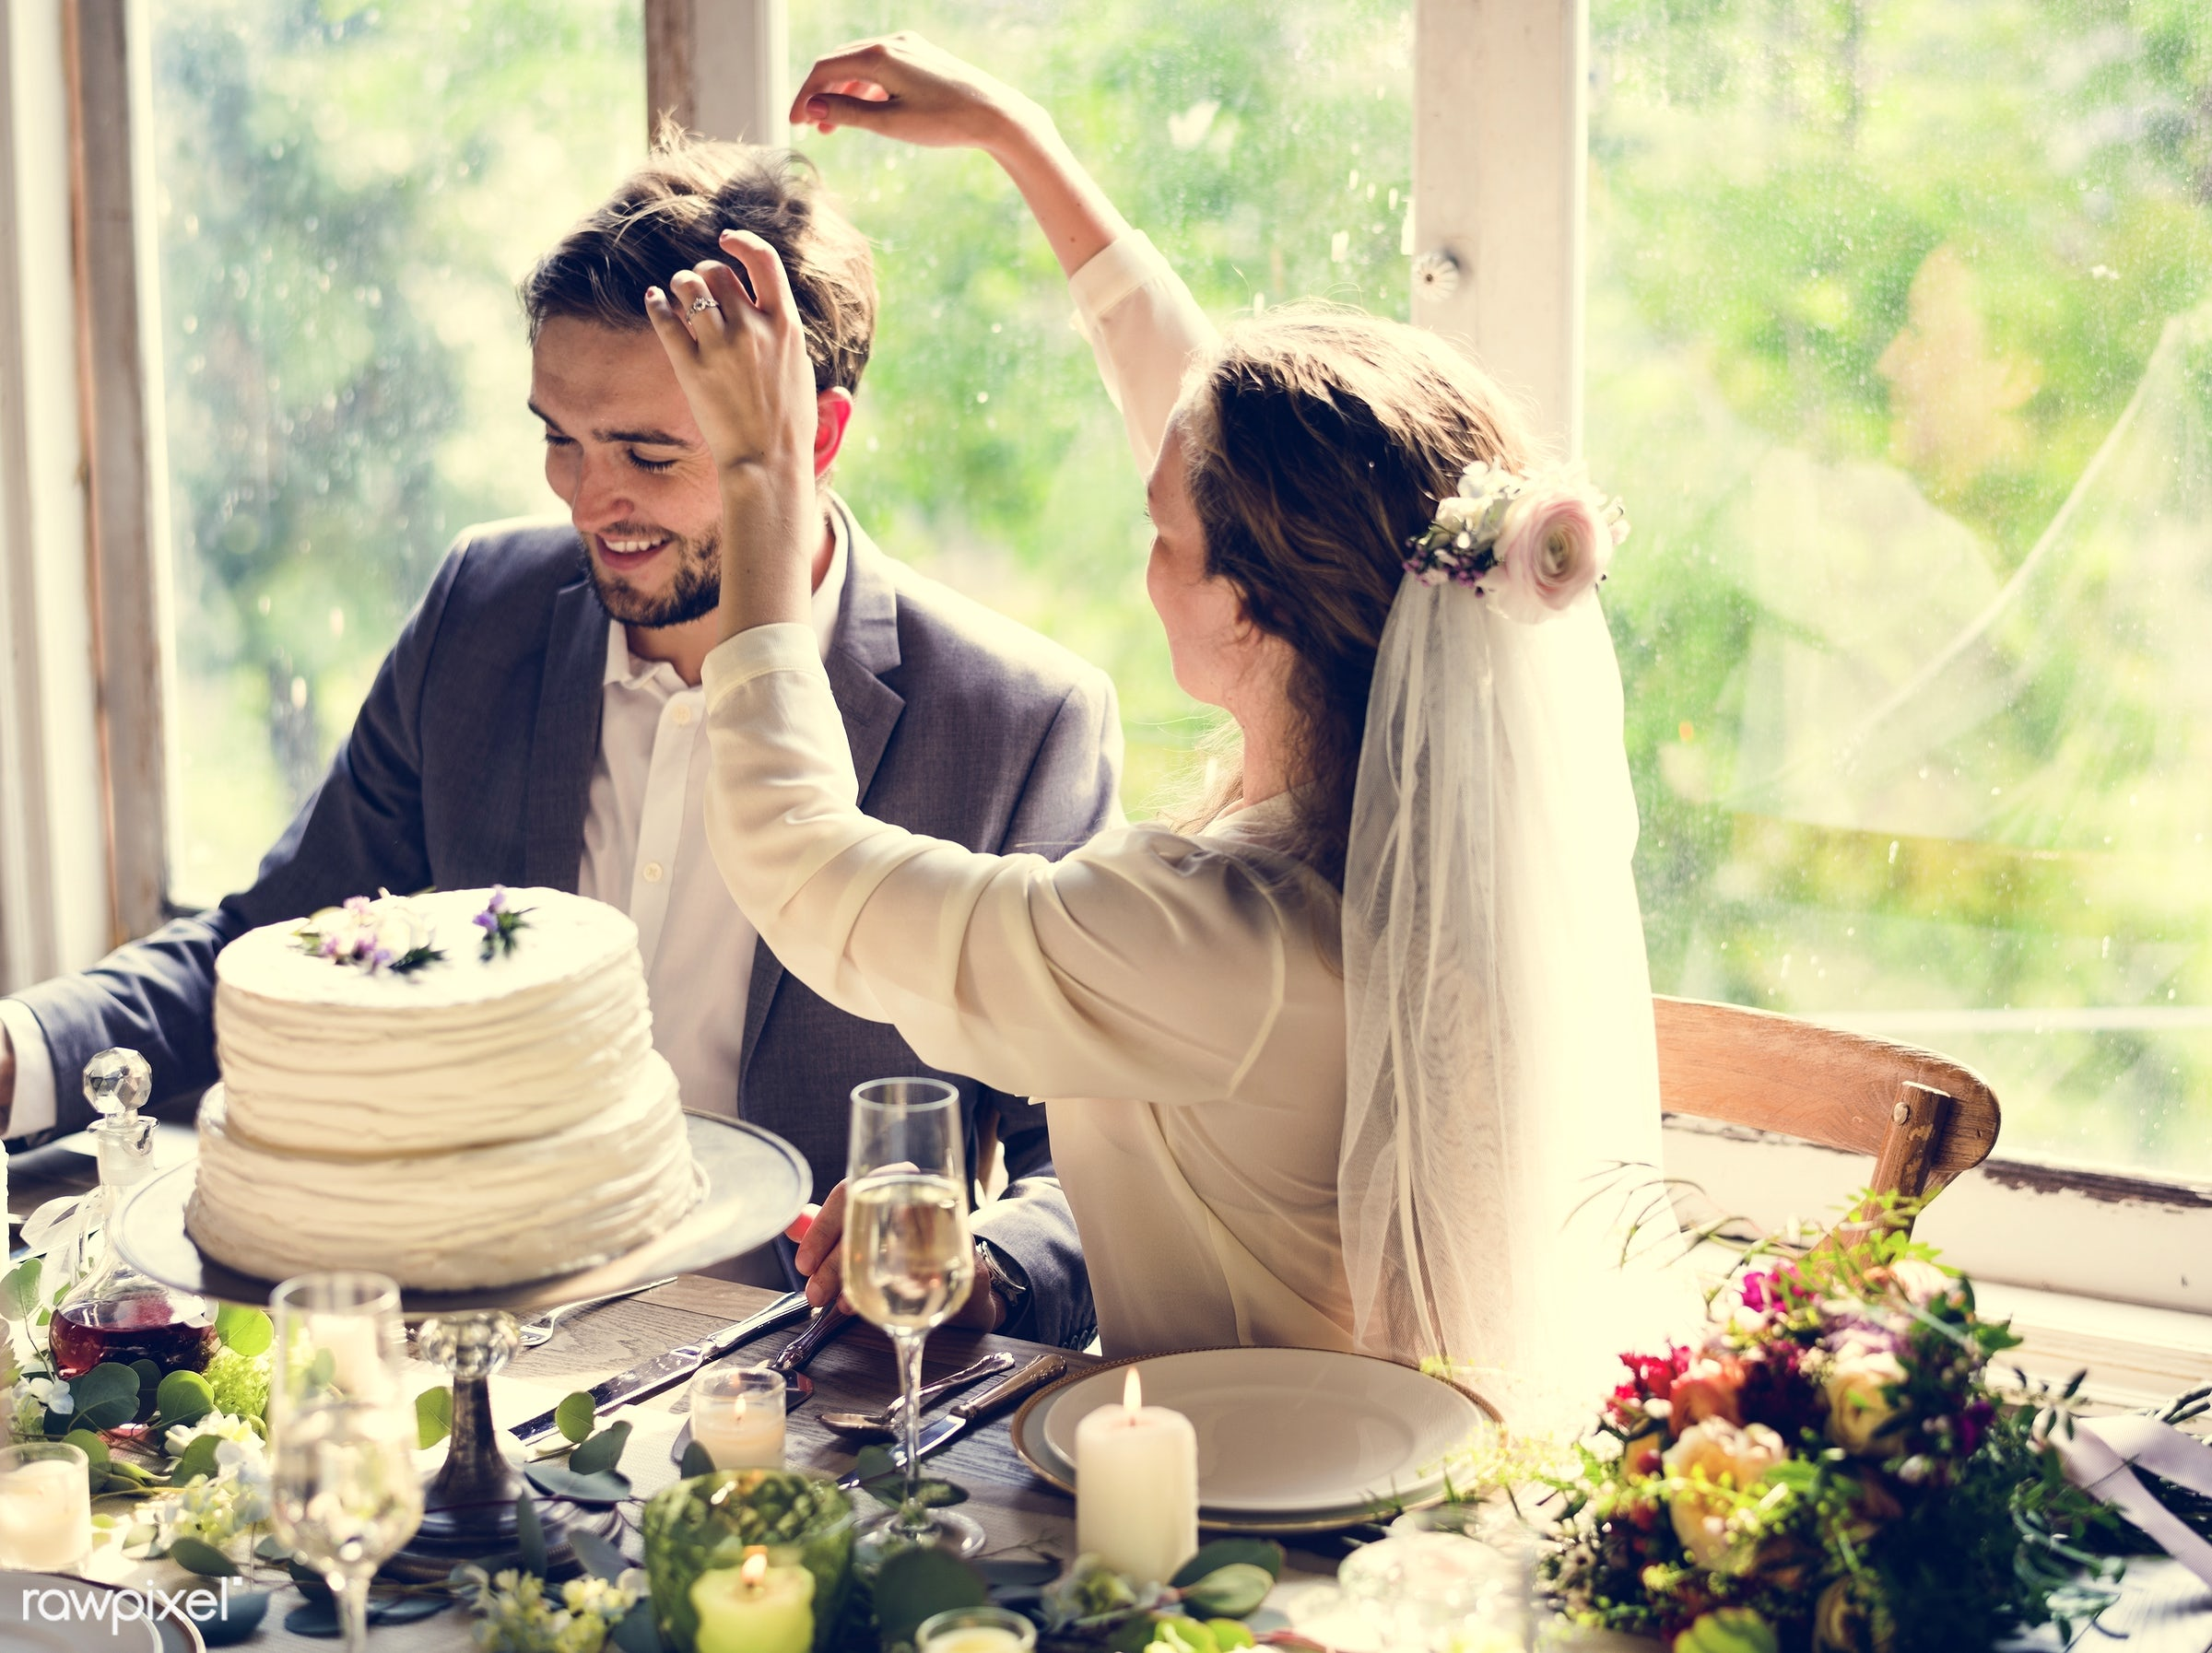 expression, person, smitten, people, together, love, married, woman, family, event, cheerful, cake, happiness, touch, set,...